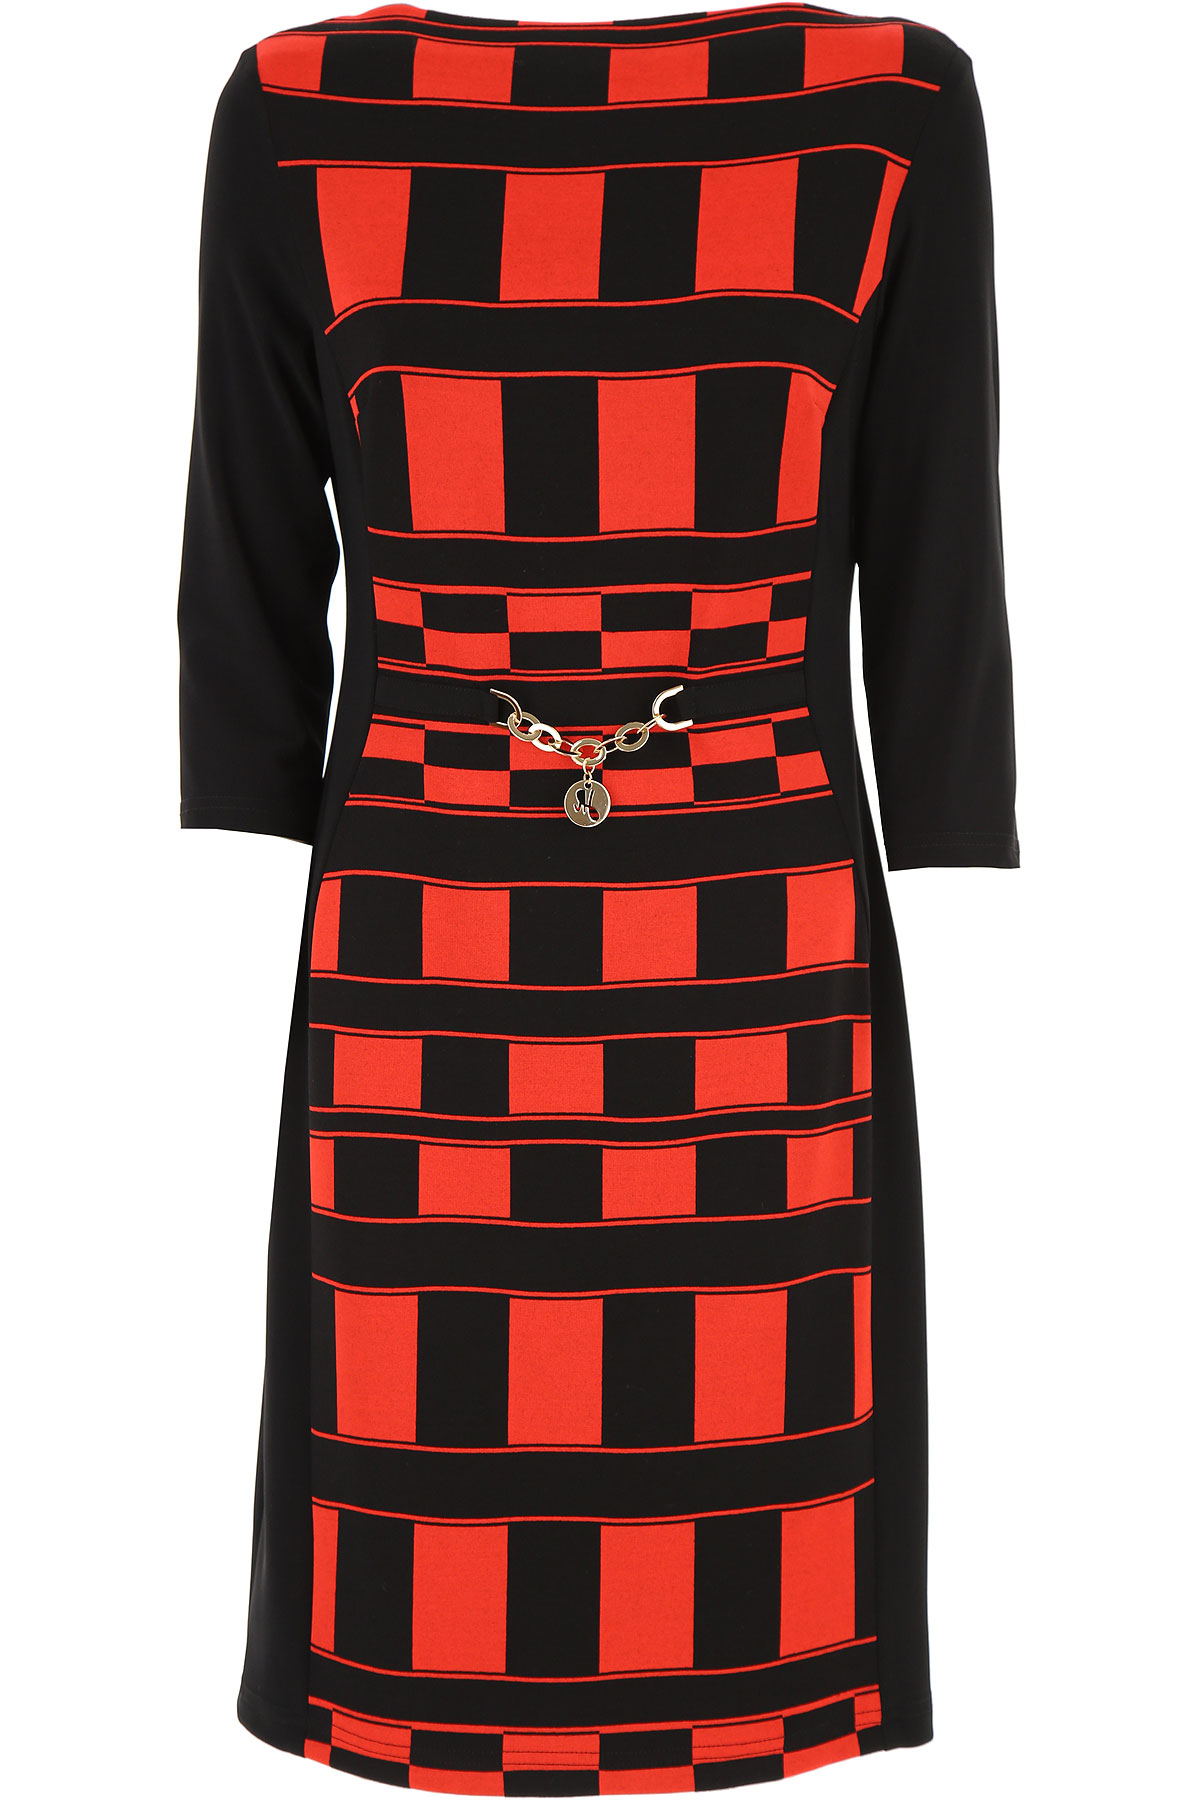 Image of Joseph Ribkoff Dress for Women, Evening Cocktail Party On Sale, Black, polyester, 2017, 10 12 6 8